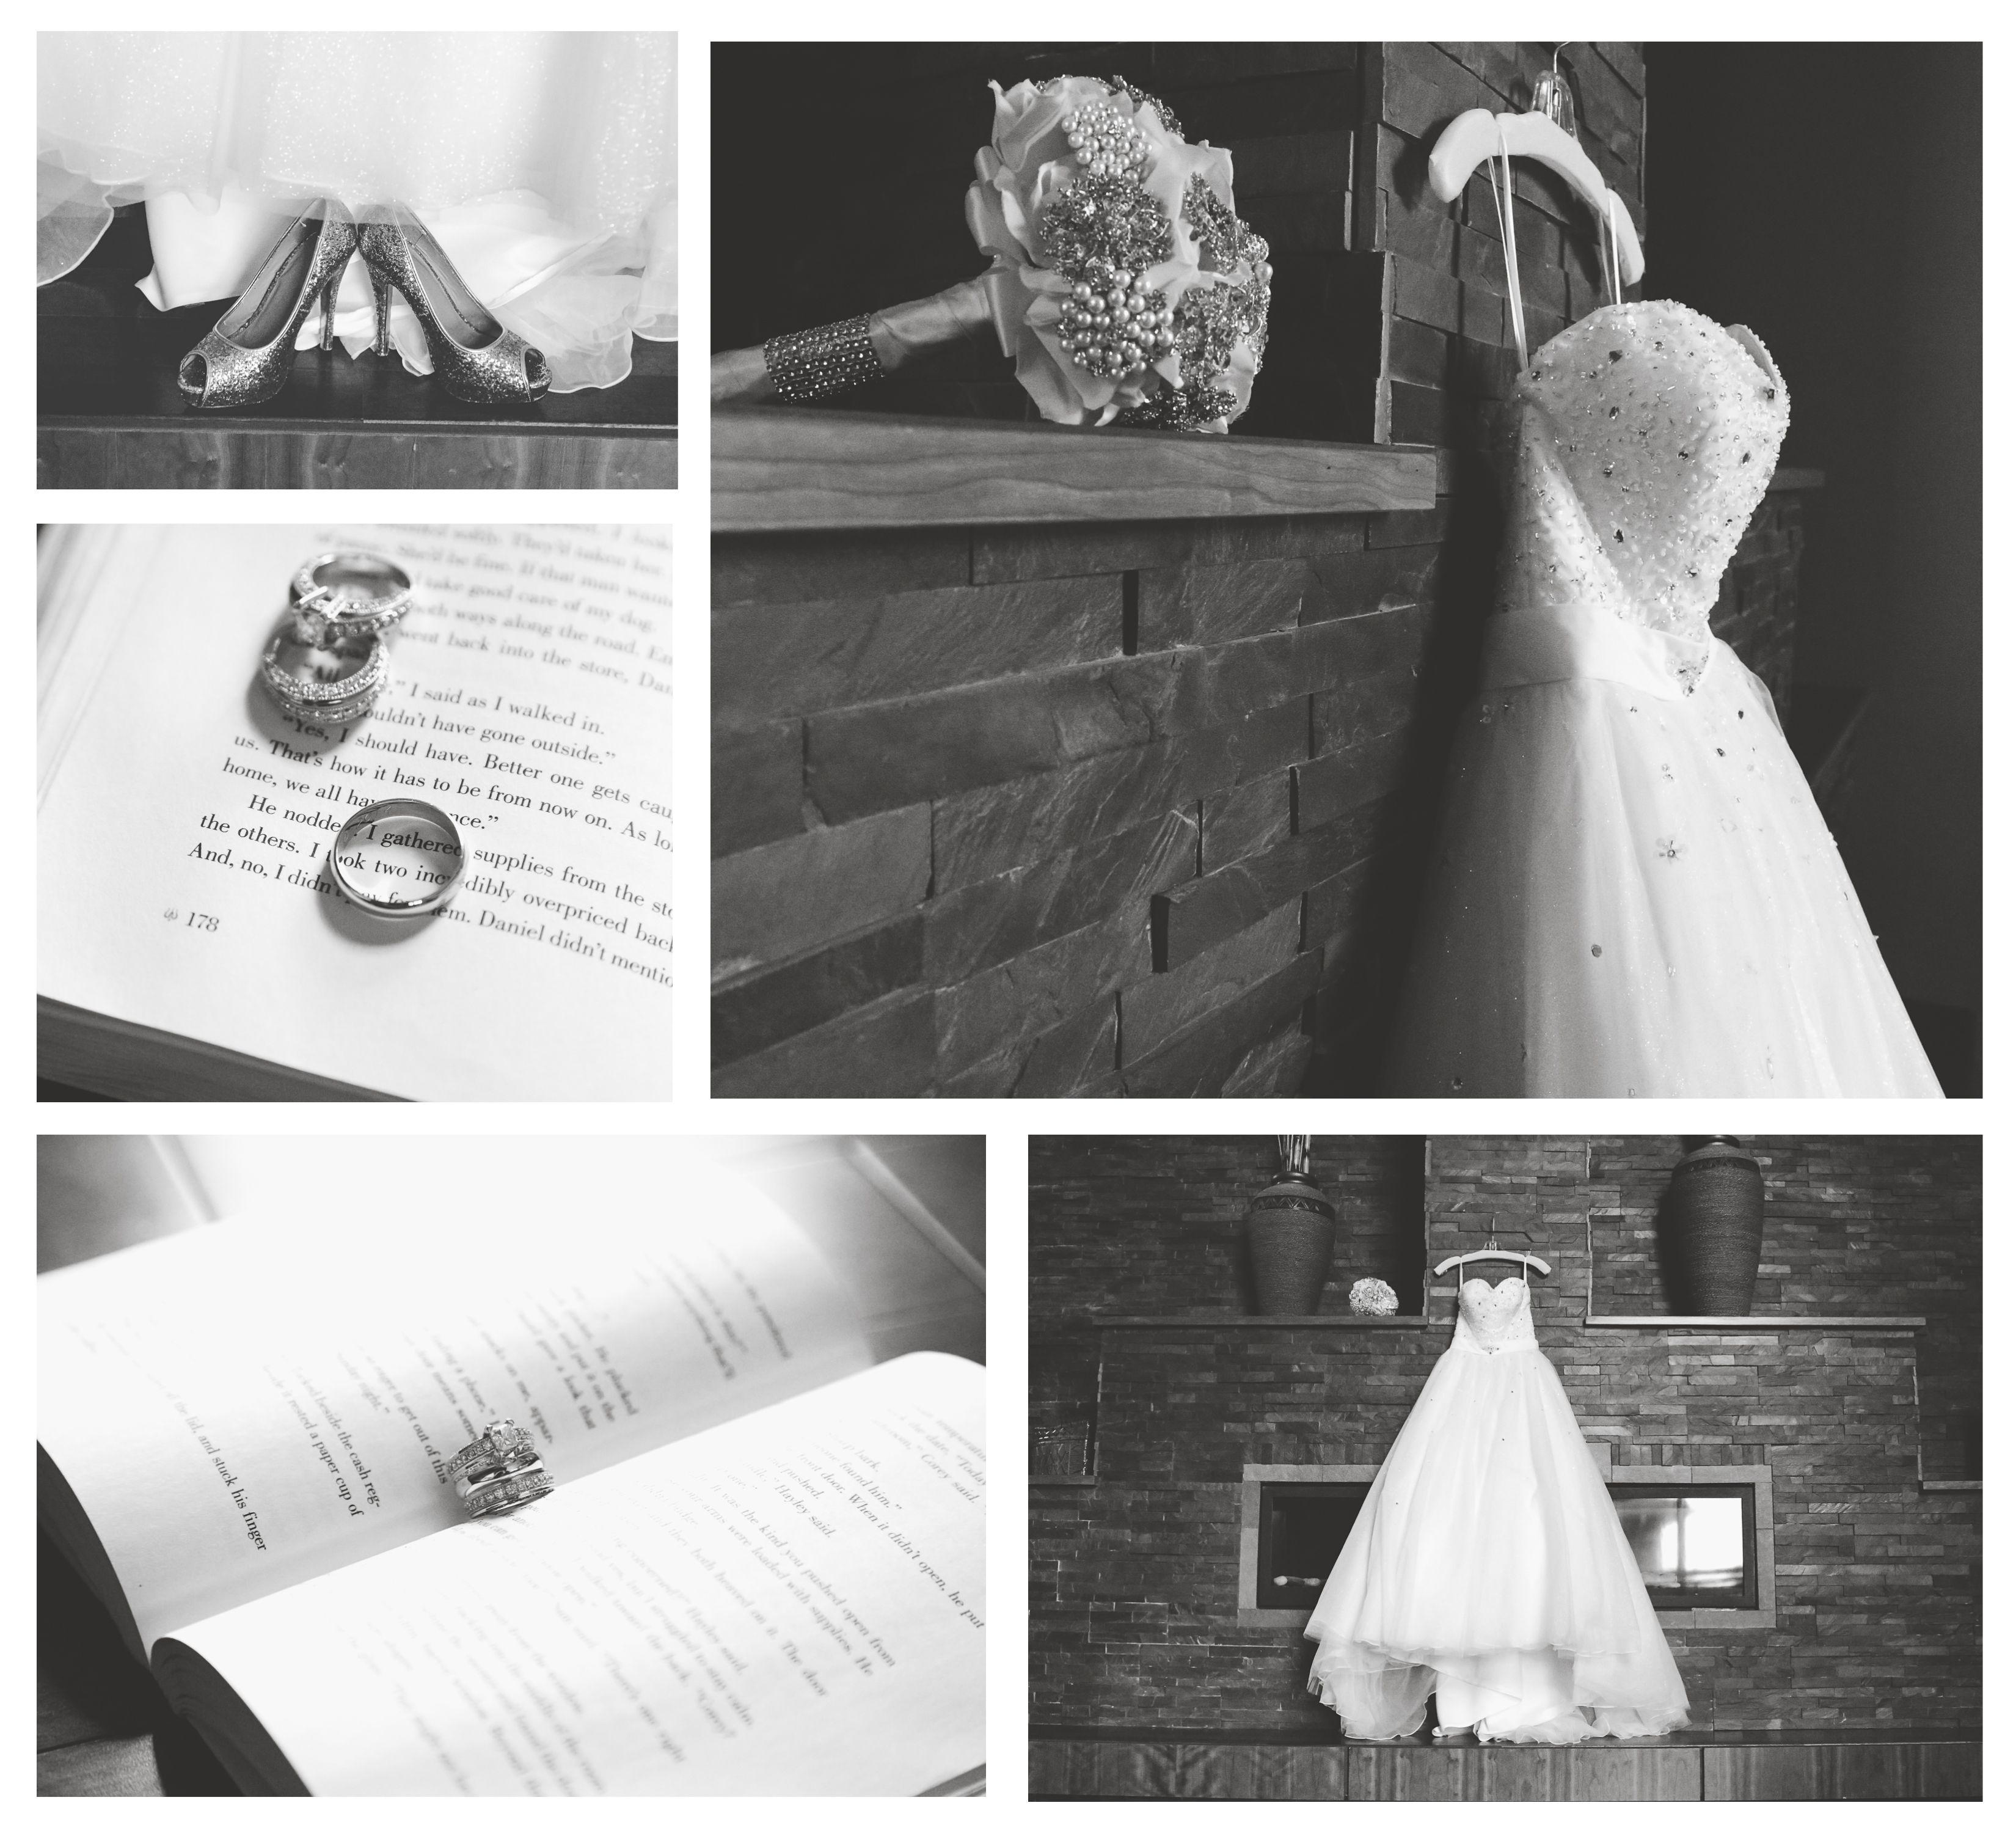 Wedding photography the details niche photography chephoto